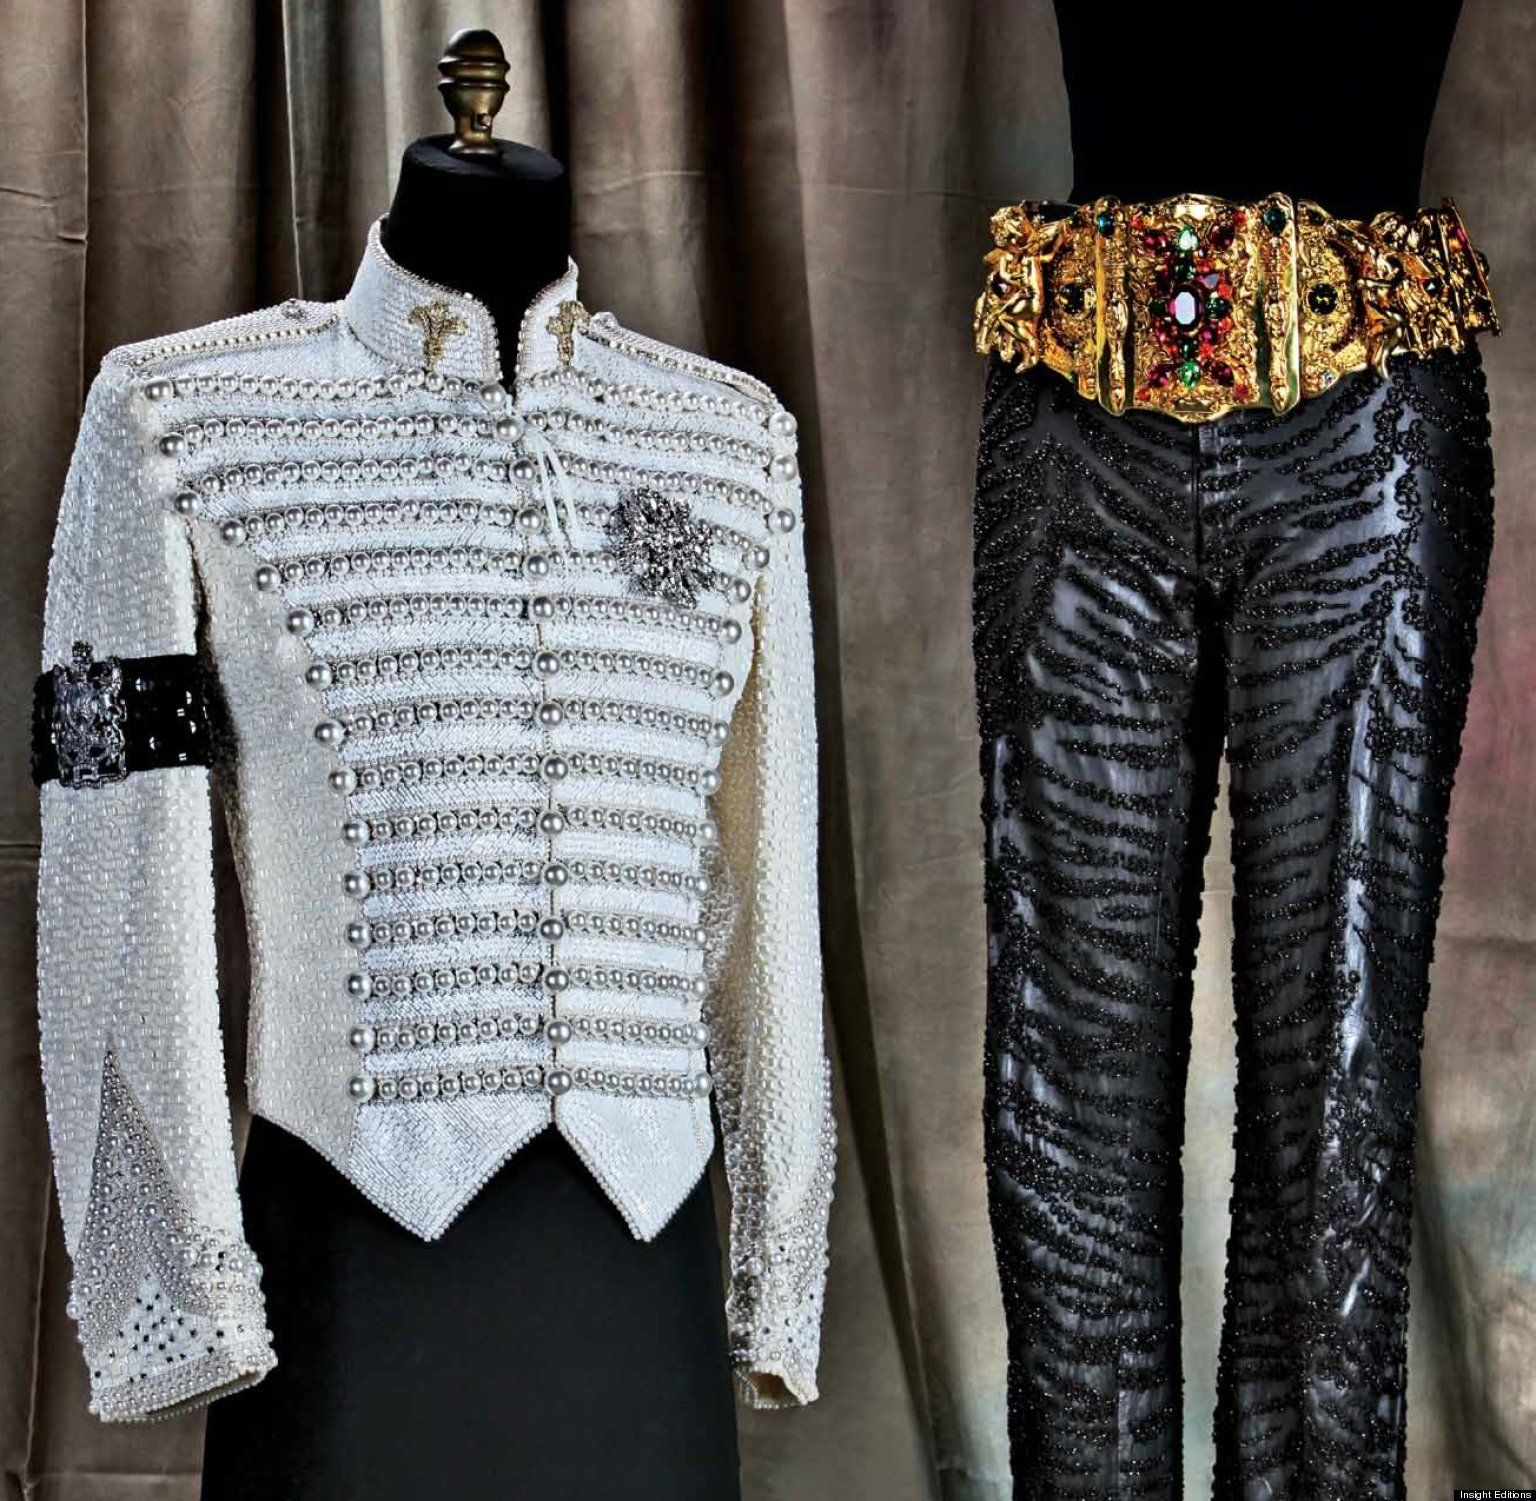 PHOTOS: See The Outfit Michael Jackson Was Buried In  Michael